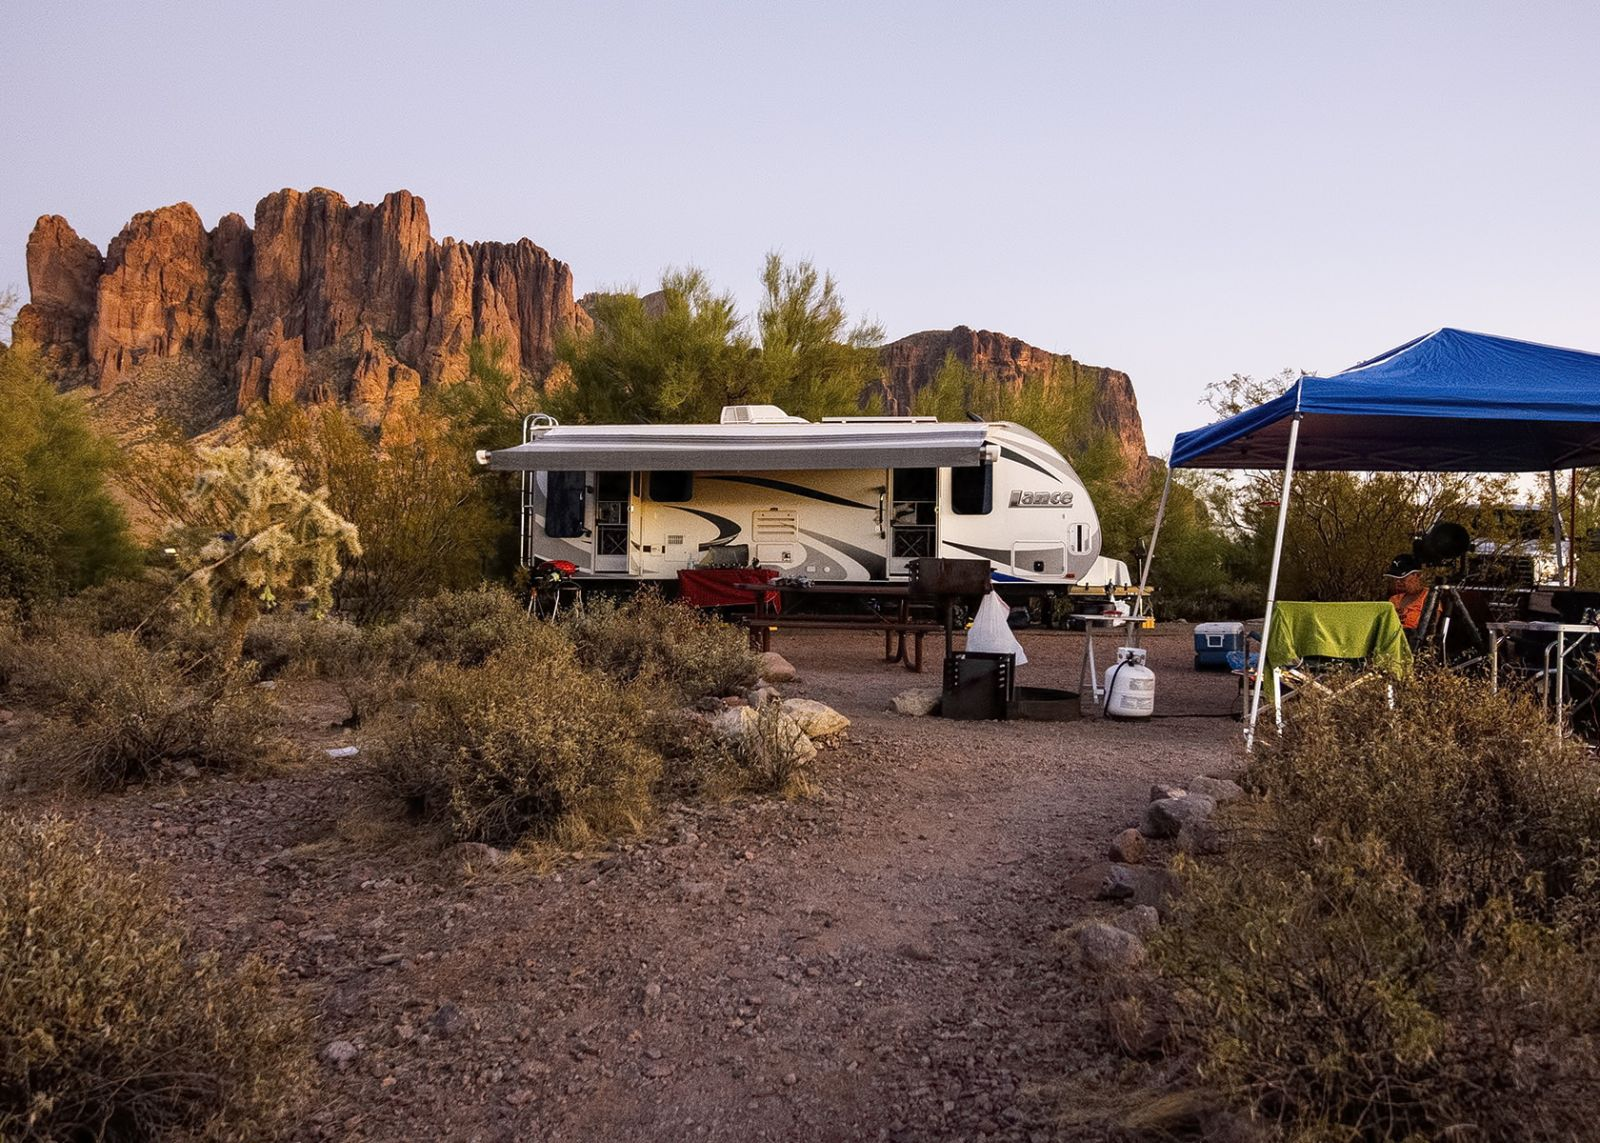 Our campsite at Lost Dutchman State Park - site #39